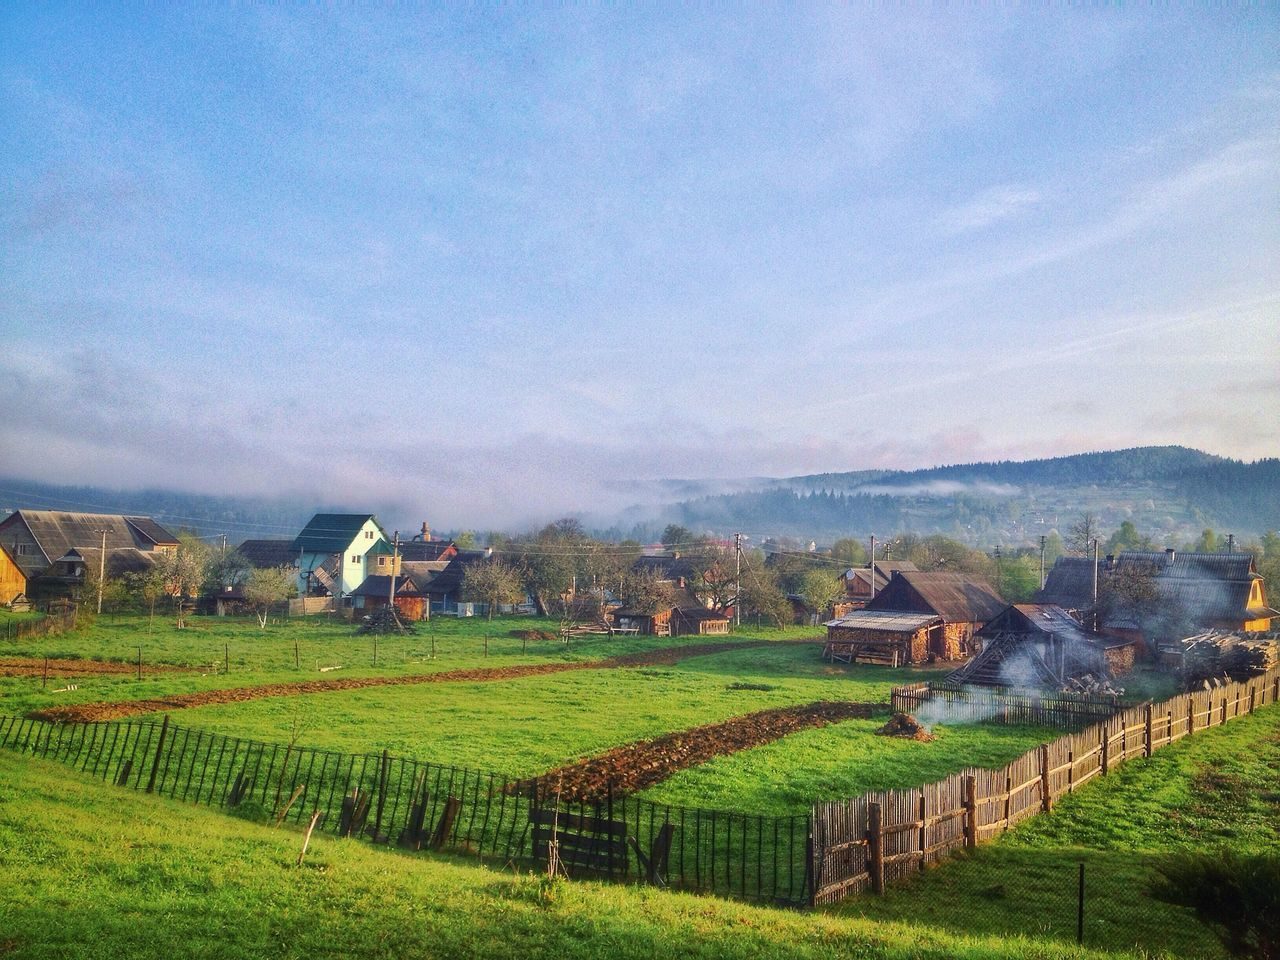 Morning in Karpathian. Field Landscape Rural Scene Farm Scenics Architecture Beauty In Nature Tranquil Scene Nature Tranquility No People Outdoors Built Structure Day Growth Sky Grass Rice Paddy Mountain Karpathian